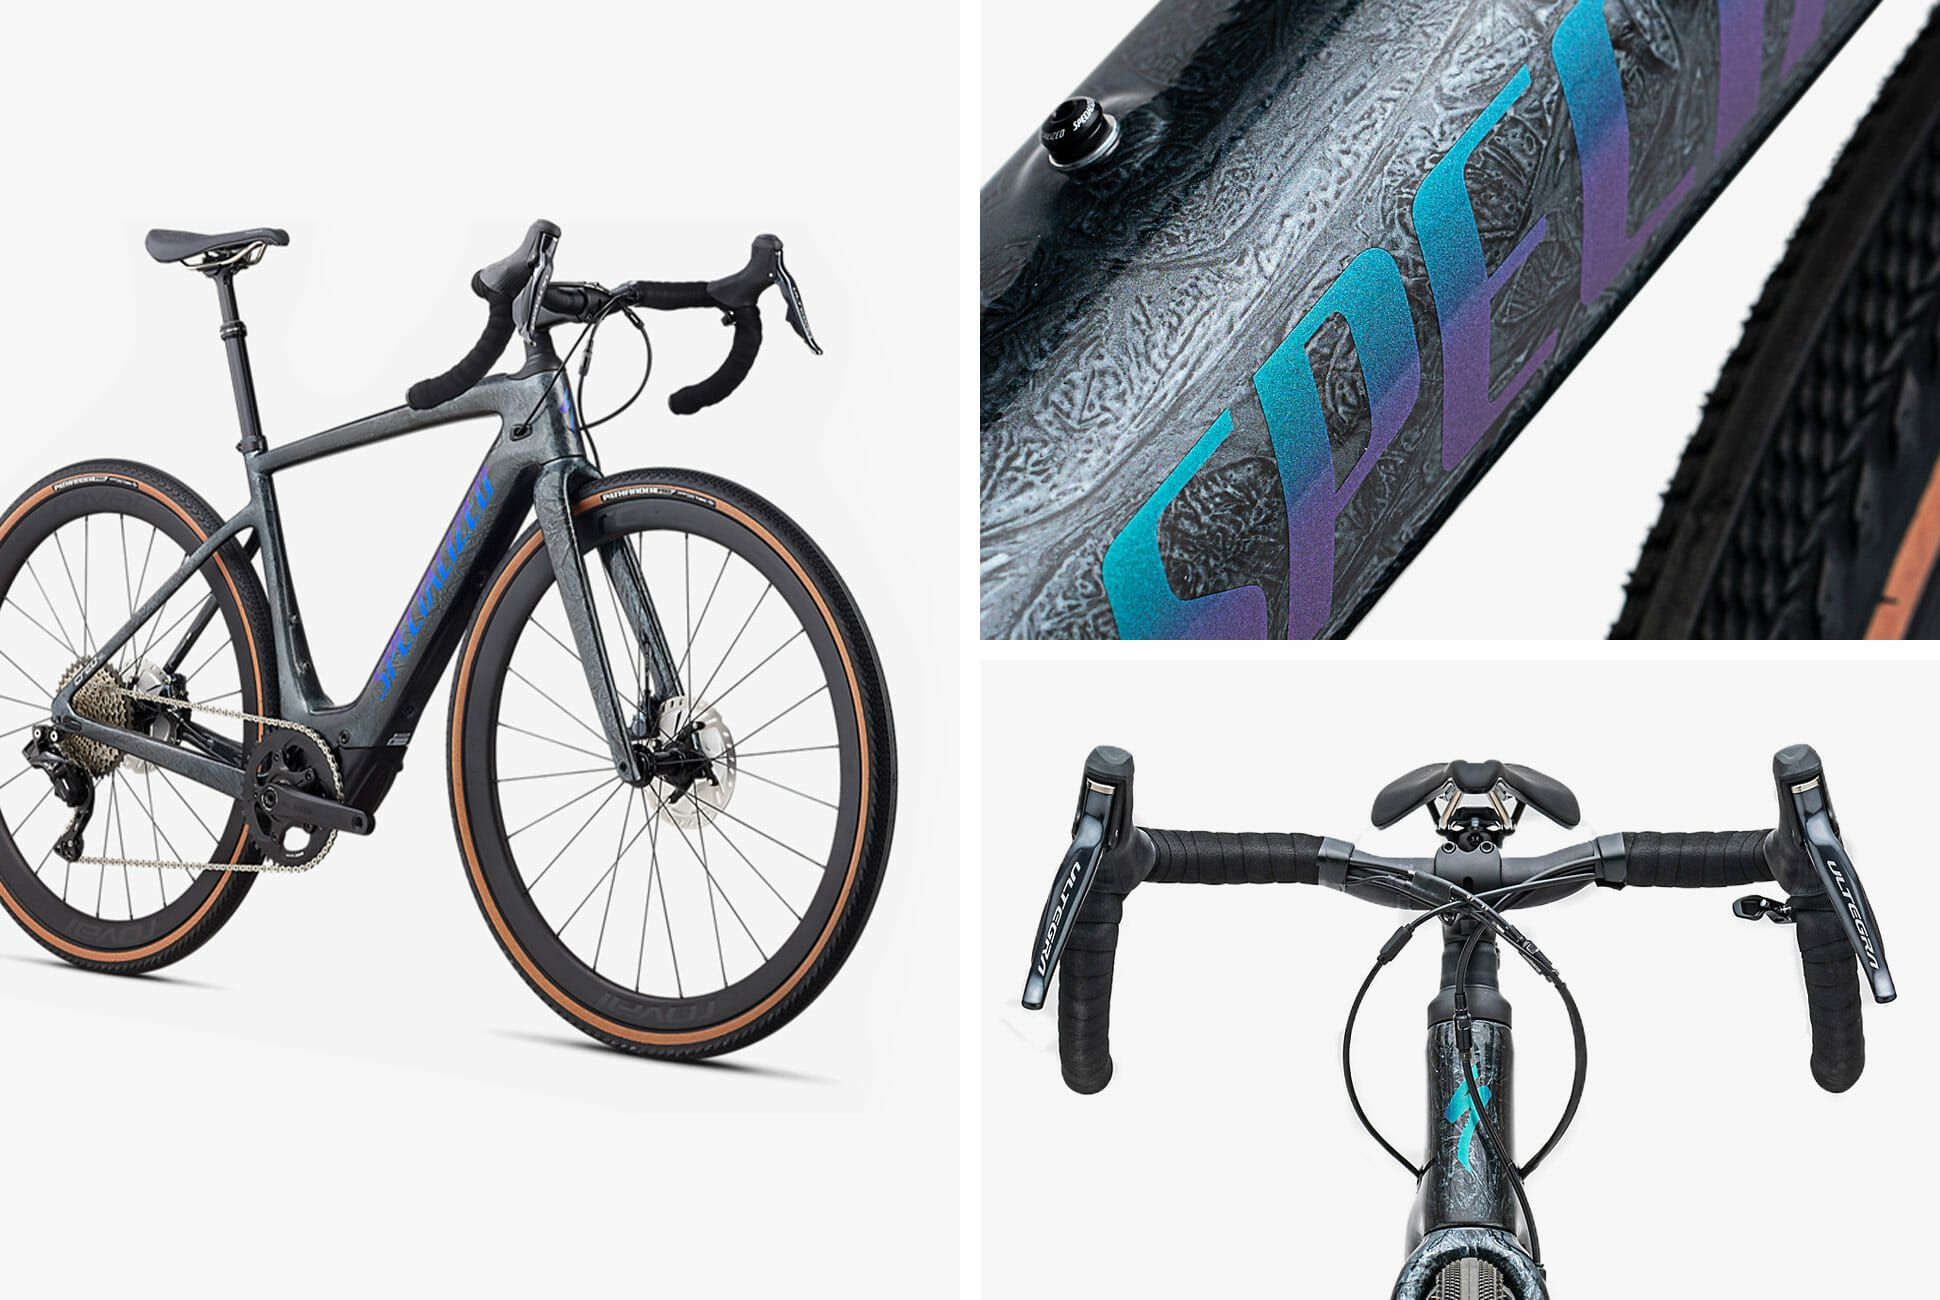 Electric Road Bike Reviews Prices Specs Videos Photos >> Review Specialized Is The First To Get The E Bike Right